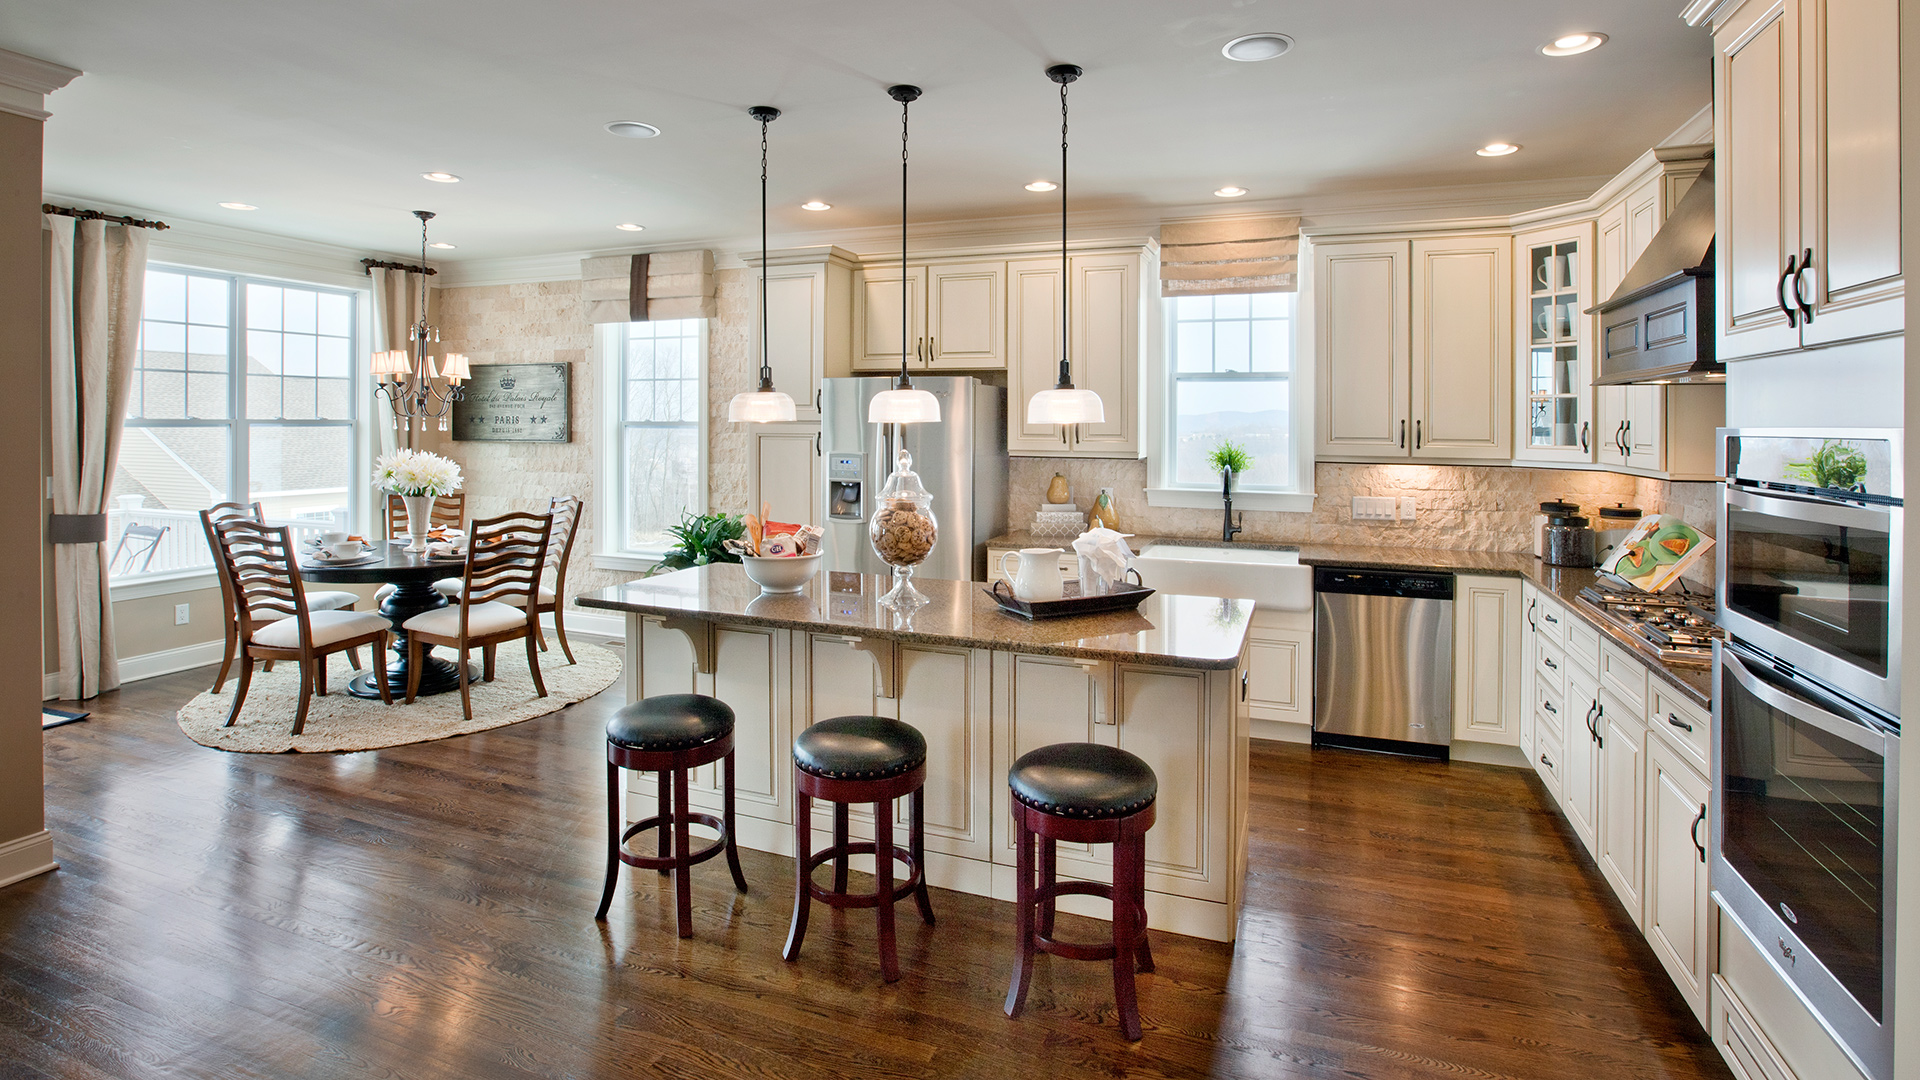 Best Kitchen Gallery: Kitchen Inspiration Gallery Toll Brothers® Luxury Homes of Luxury Home Kitchens on rachelxblog.com